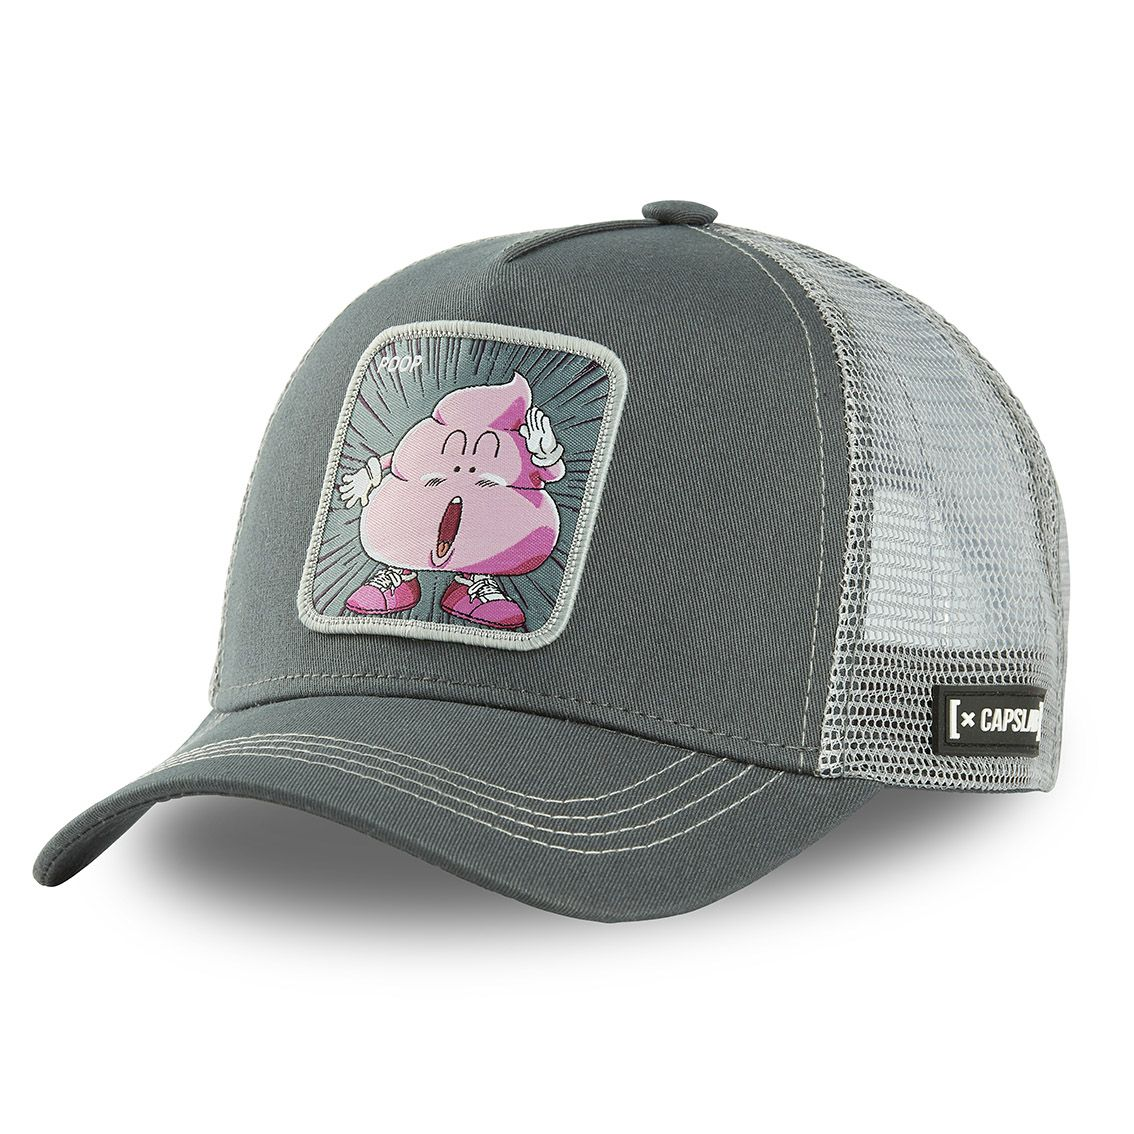 Casquette capslab dr slump poop gris (photo)